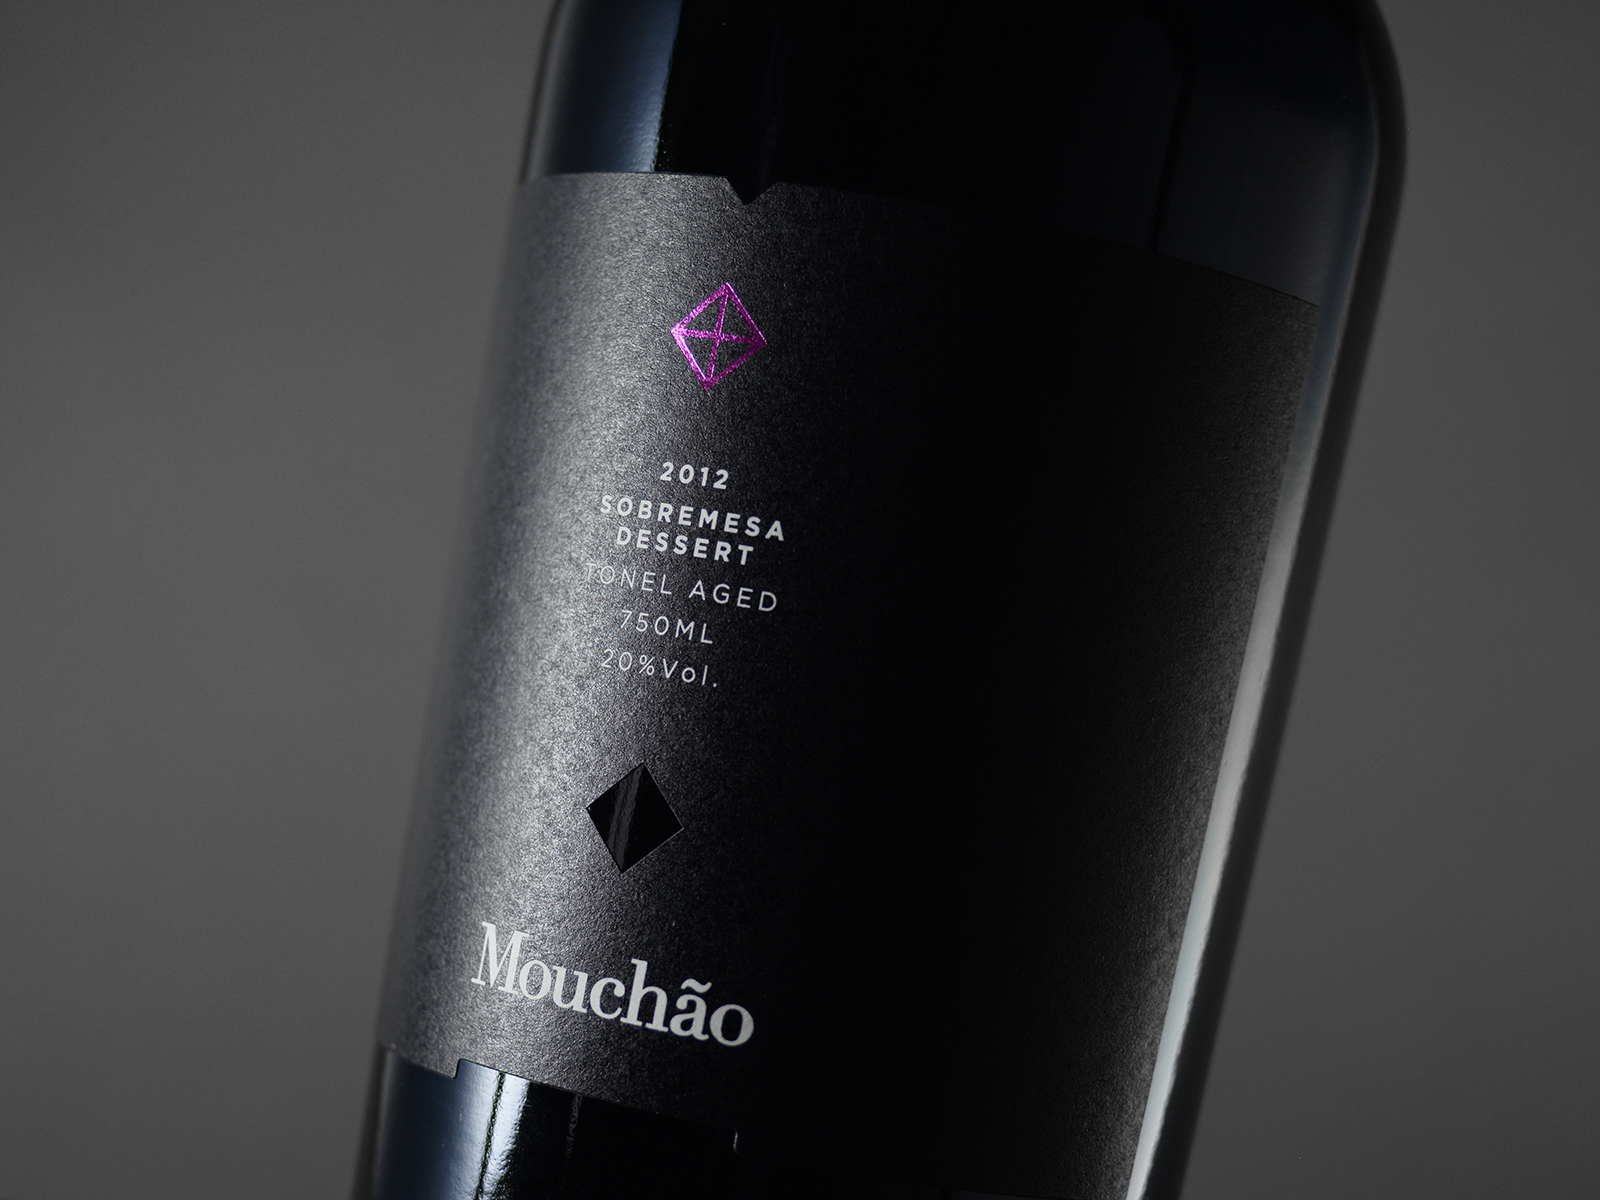 Mouchao Fortified Wines Rebrand / World Brand & Packaging Design Society